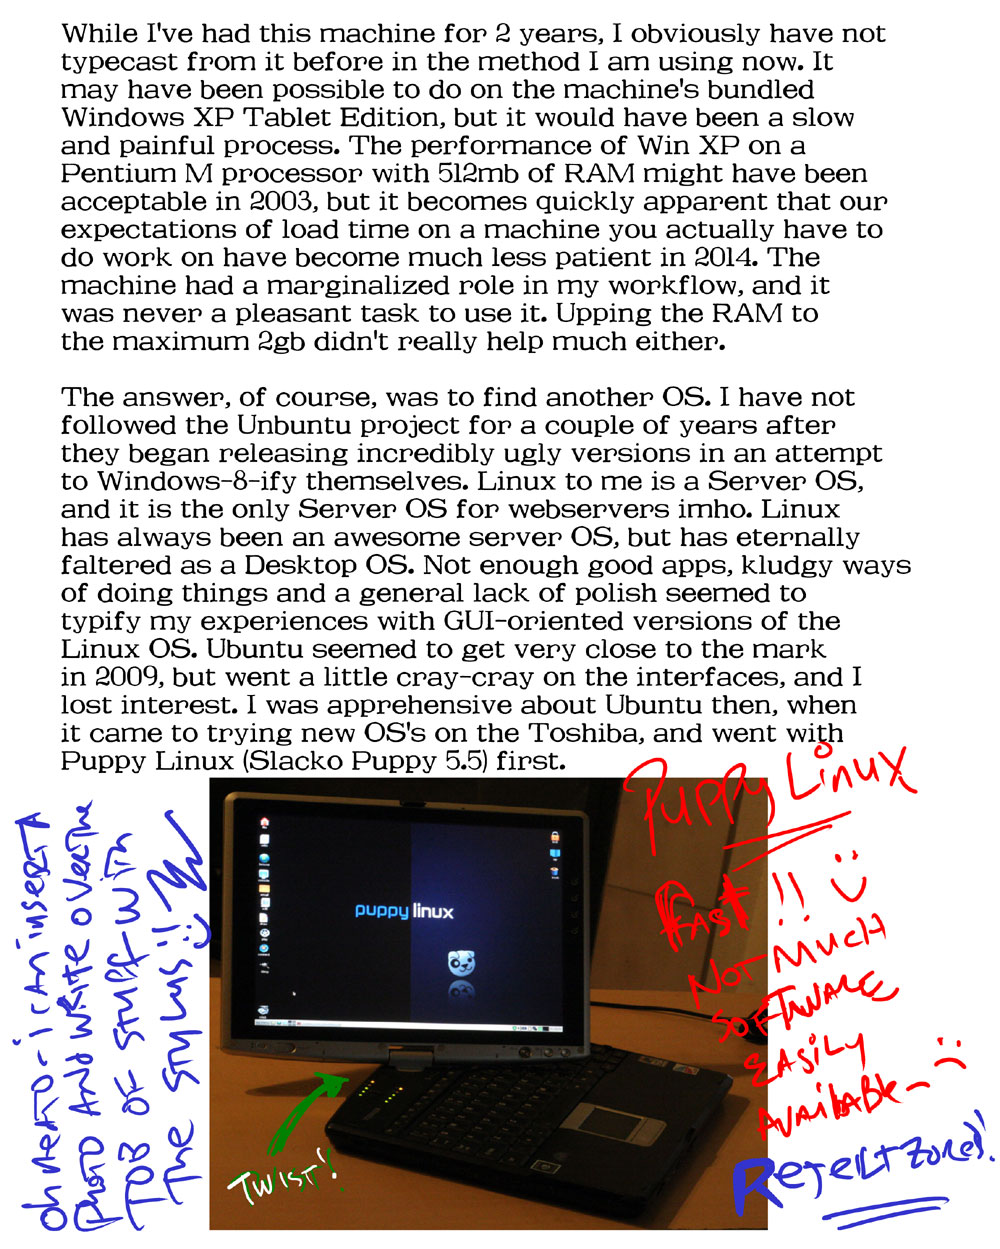 2014 09 18 b Paleocomputing: A Linux suitable for an old stylus tablet laptop